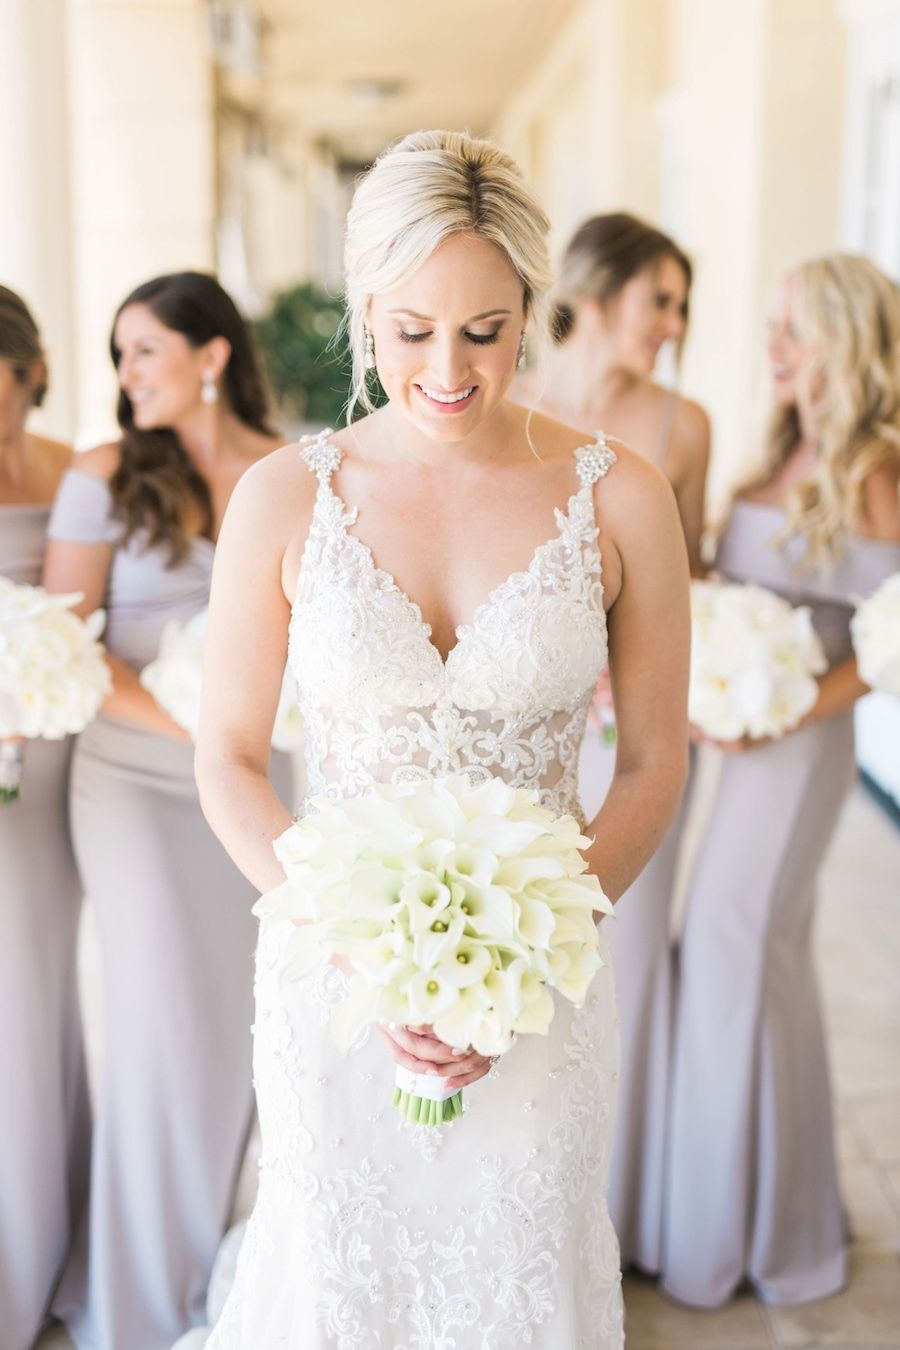 49+ White and silver mesh wedding dress ideas in 2021